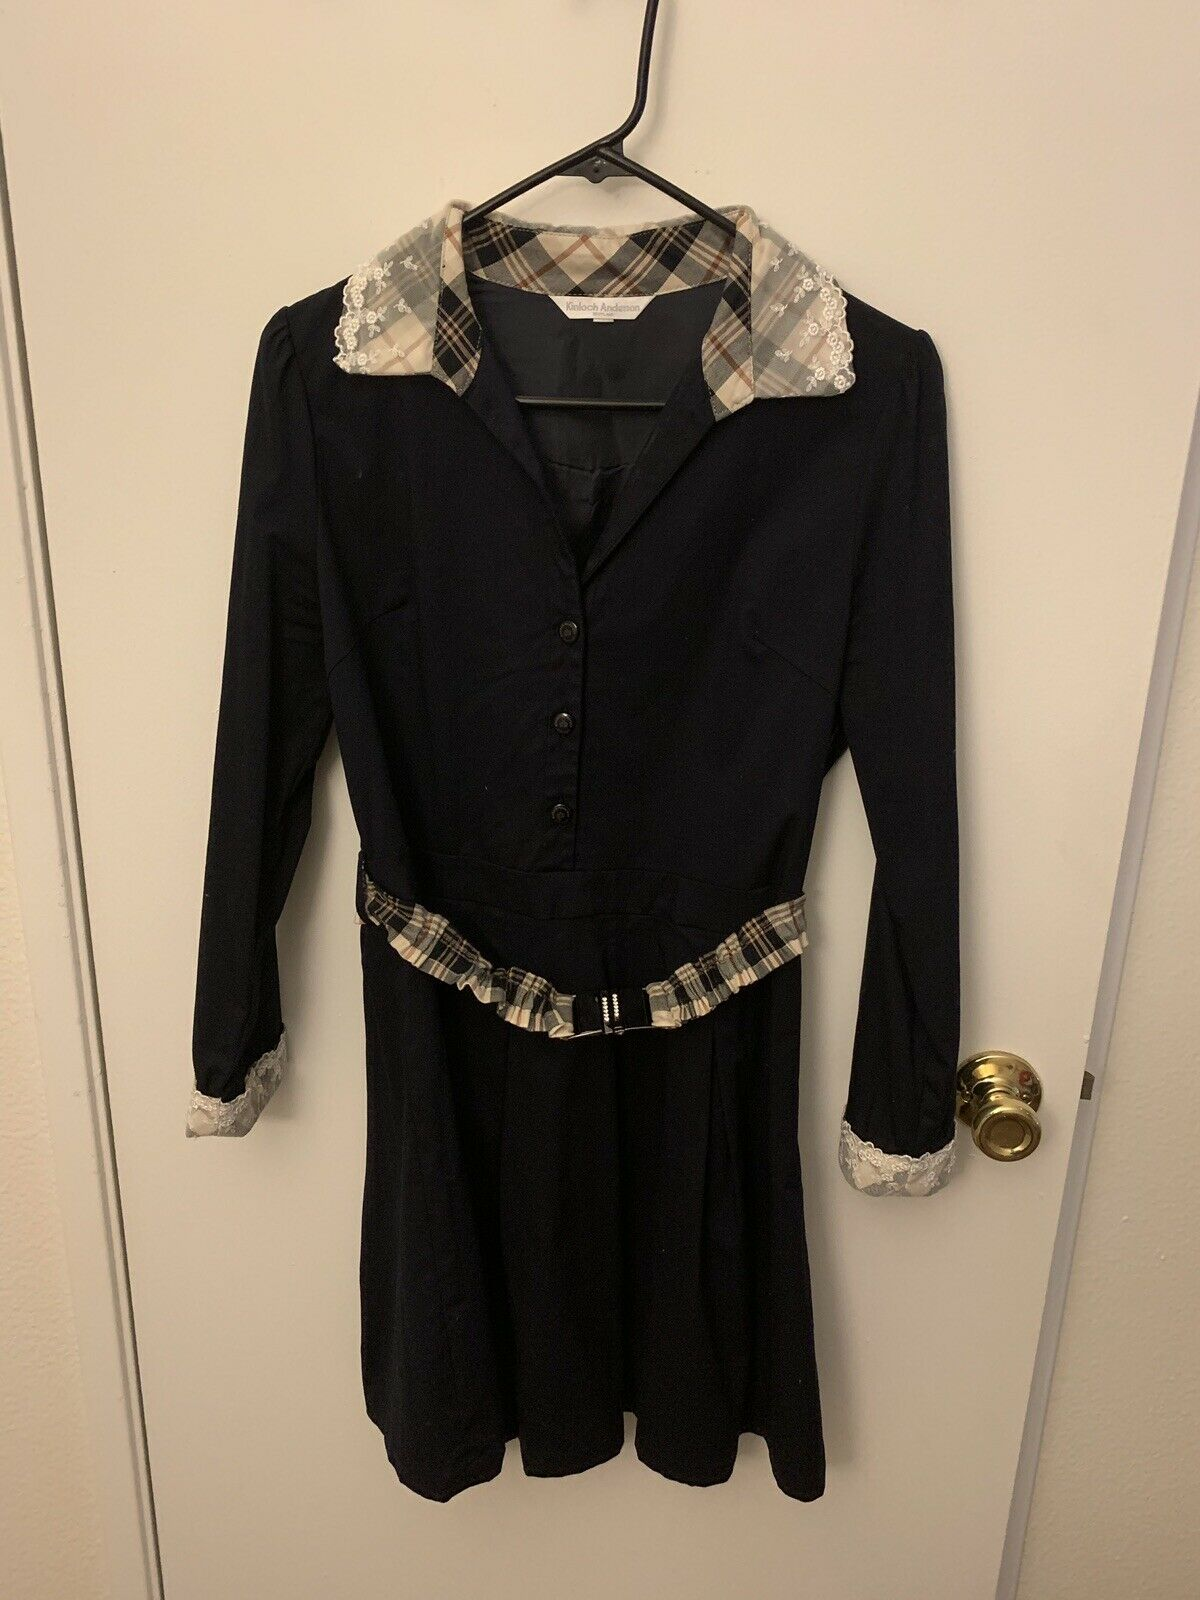 Kinloch anderson dress With Belt bluee Long Sleeves With Lace Size 38 Women